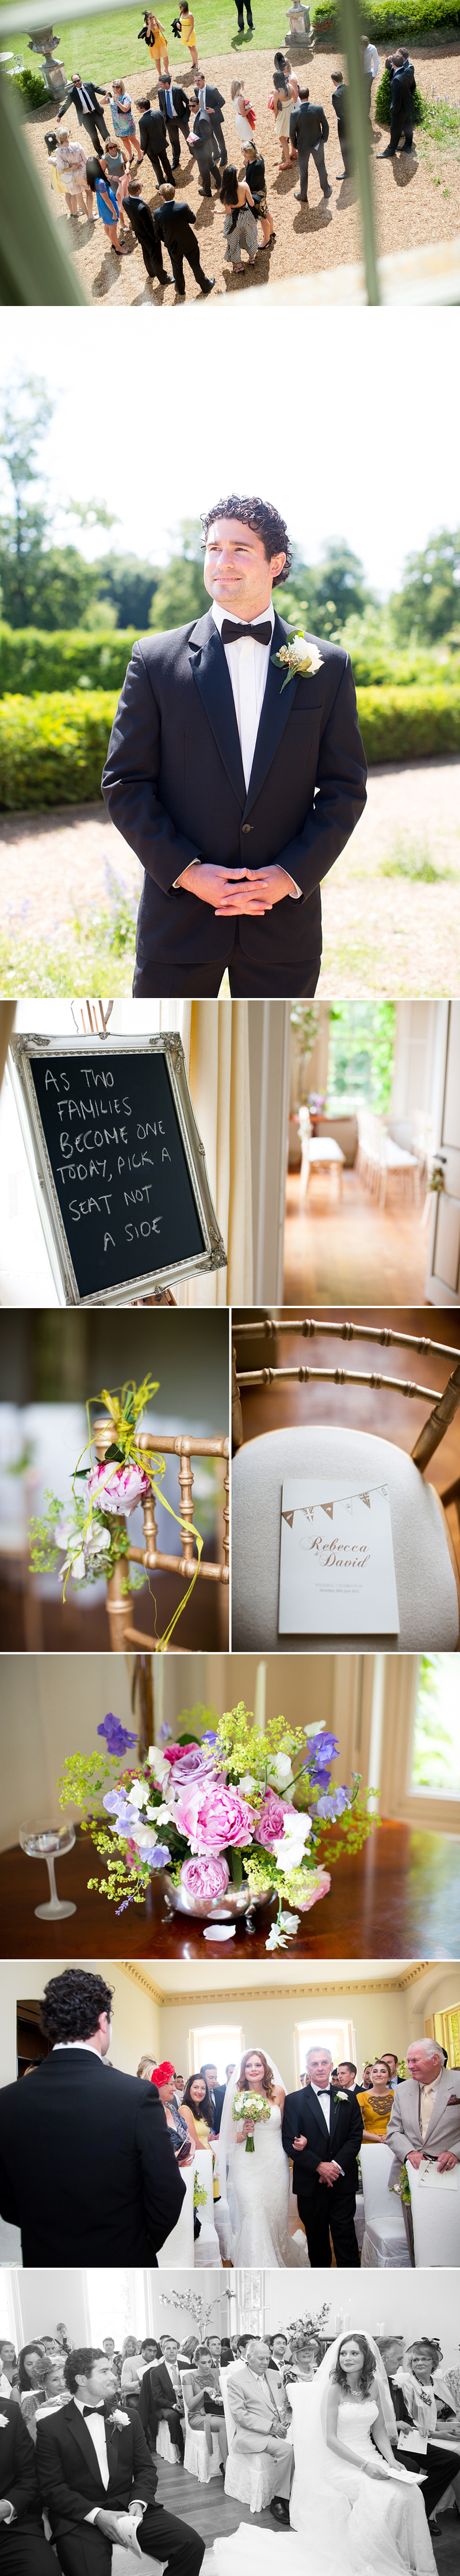 coco-wedding-venues-real-wedding-narborough-hall-gardens-katherine-ashdown-photography-3